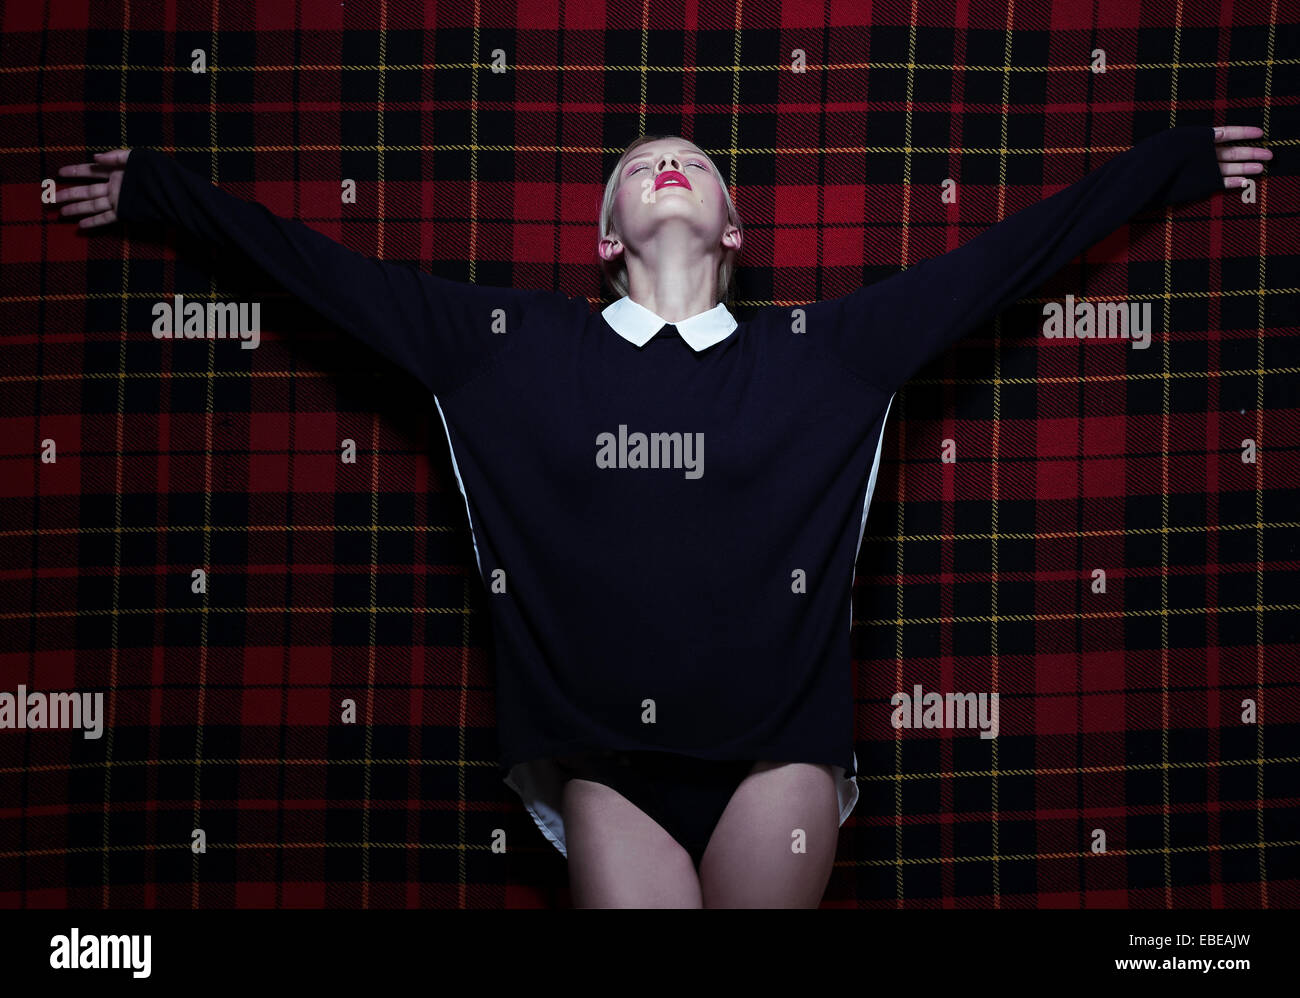 Woman in Dramatic Pose with Outstretched Hands over Purple Tartan - Stock Image